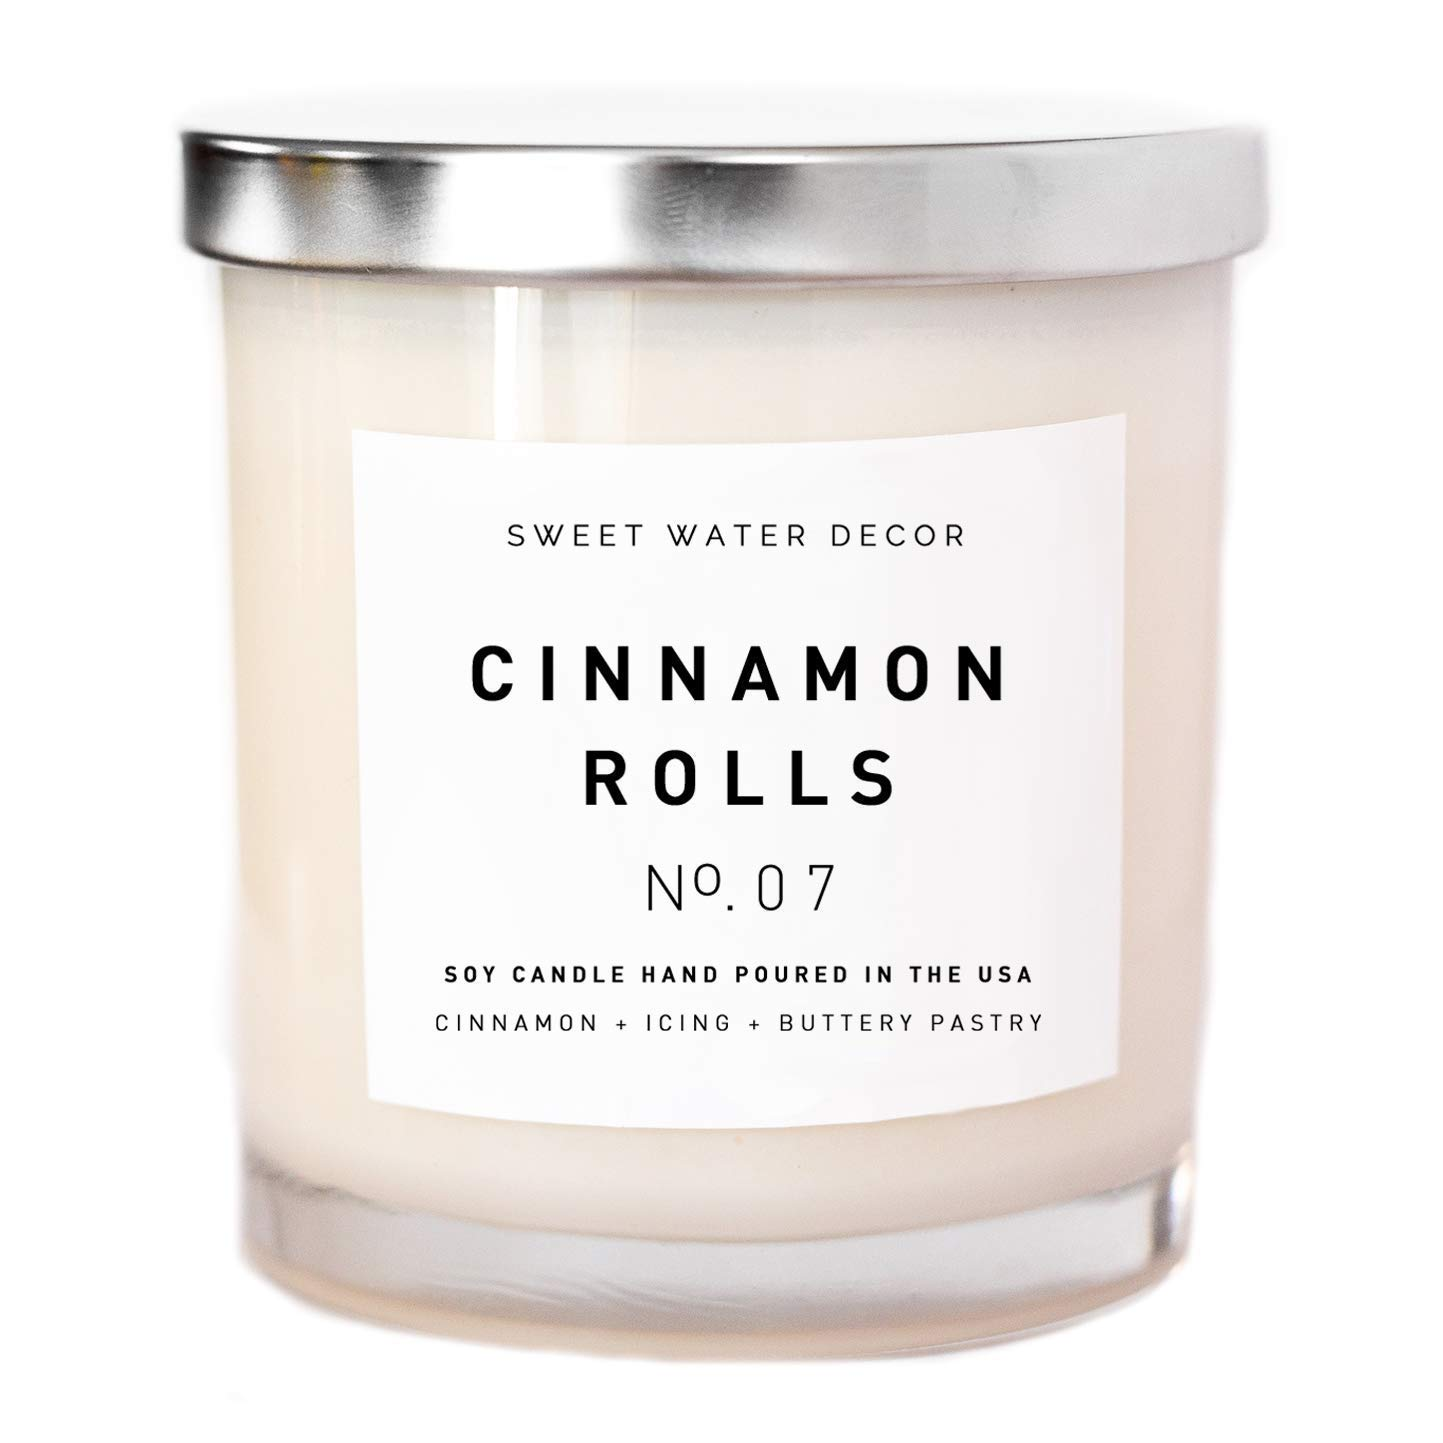 Cinnamon Rolls Natural Soy Wax Candle White Jar Silver Lid Scented Cloves Vanilla Icing Buttery Pastry Food Fall Winter Christmas Lead and Gluten Free Cotton Wicks Country Rustic Decor Made in USA by Sweet Water Decor